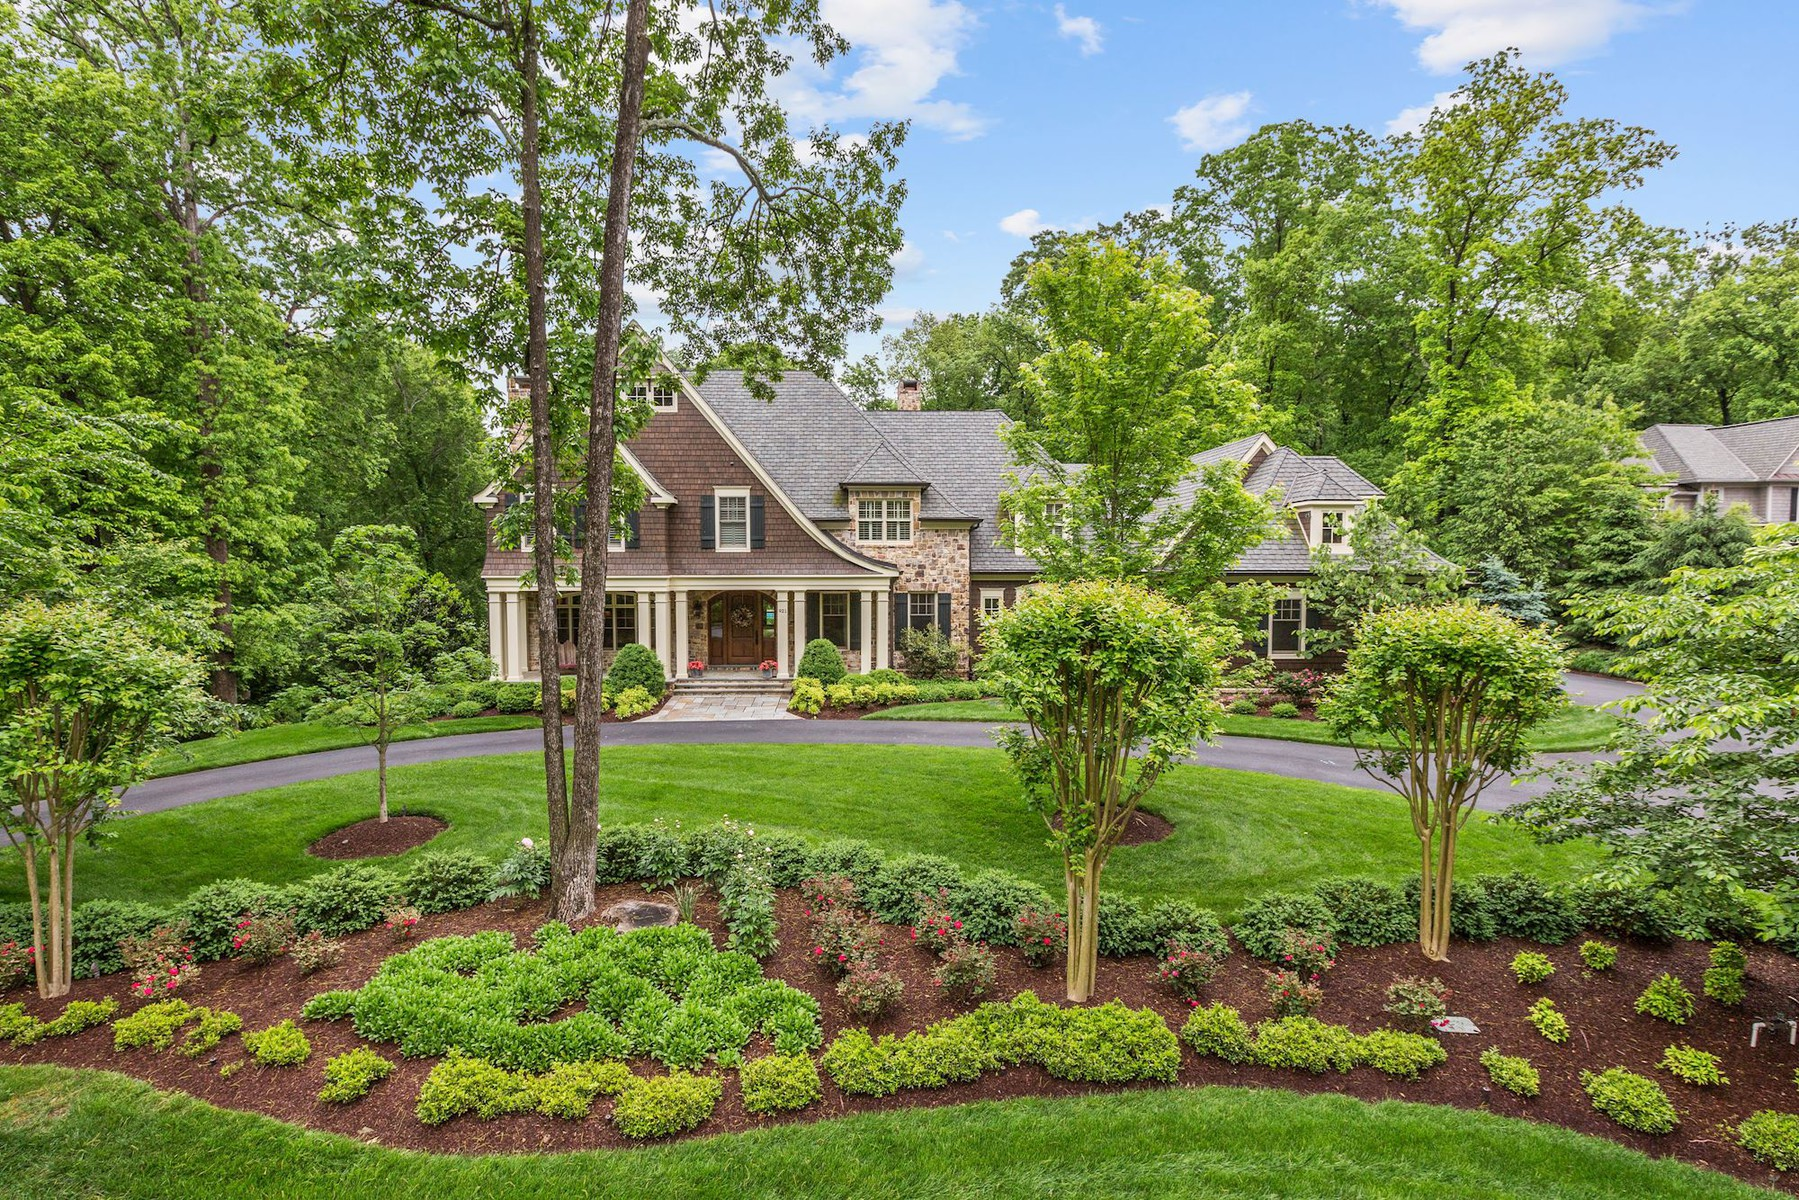 Single Family Home for Sale at 921 Mackall Avenue, Mclean McLean, Virginia 22101 United States